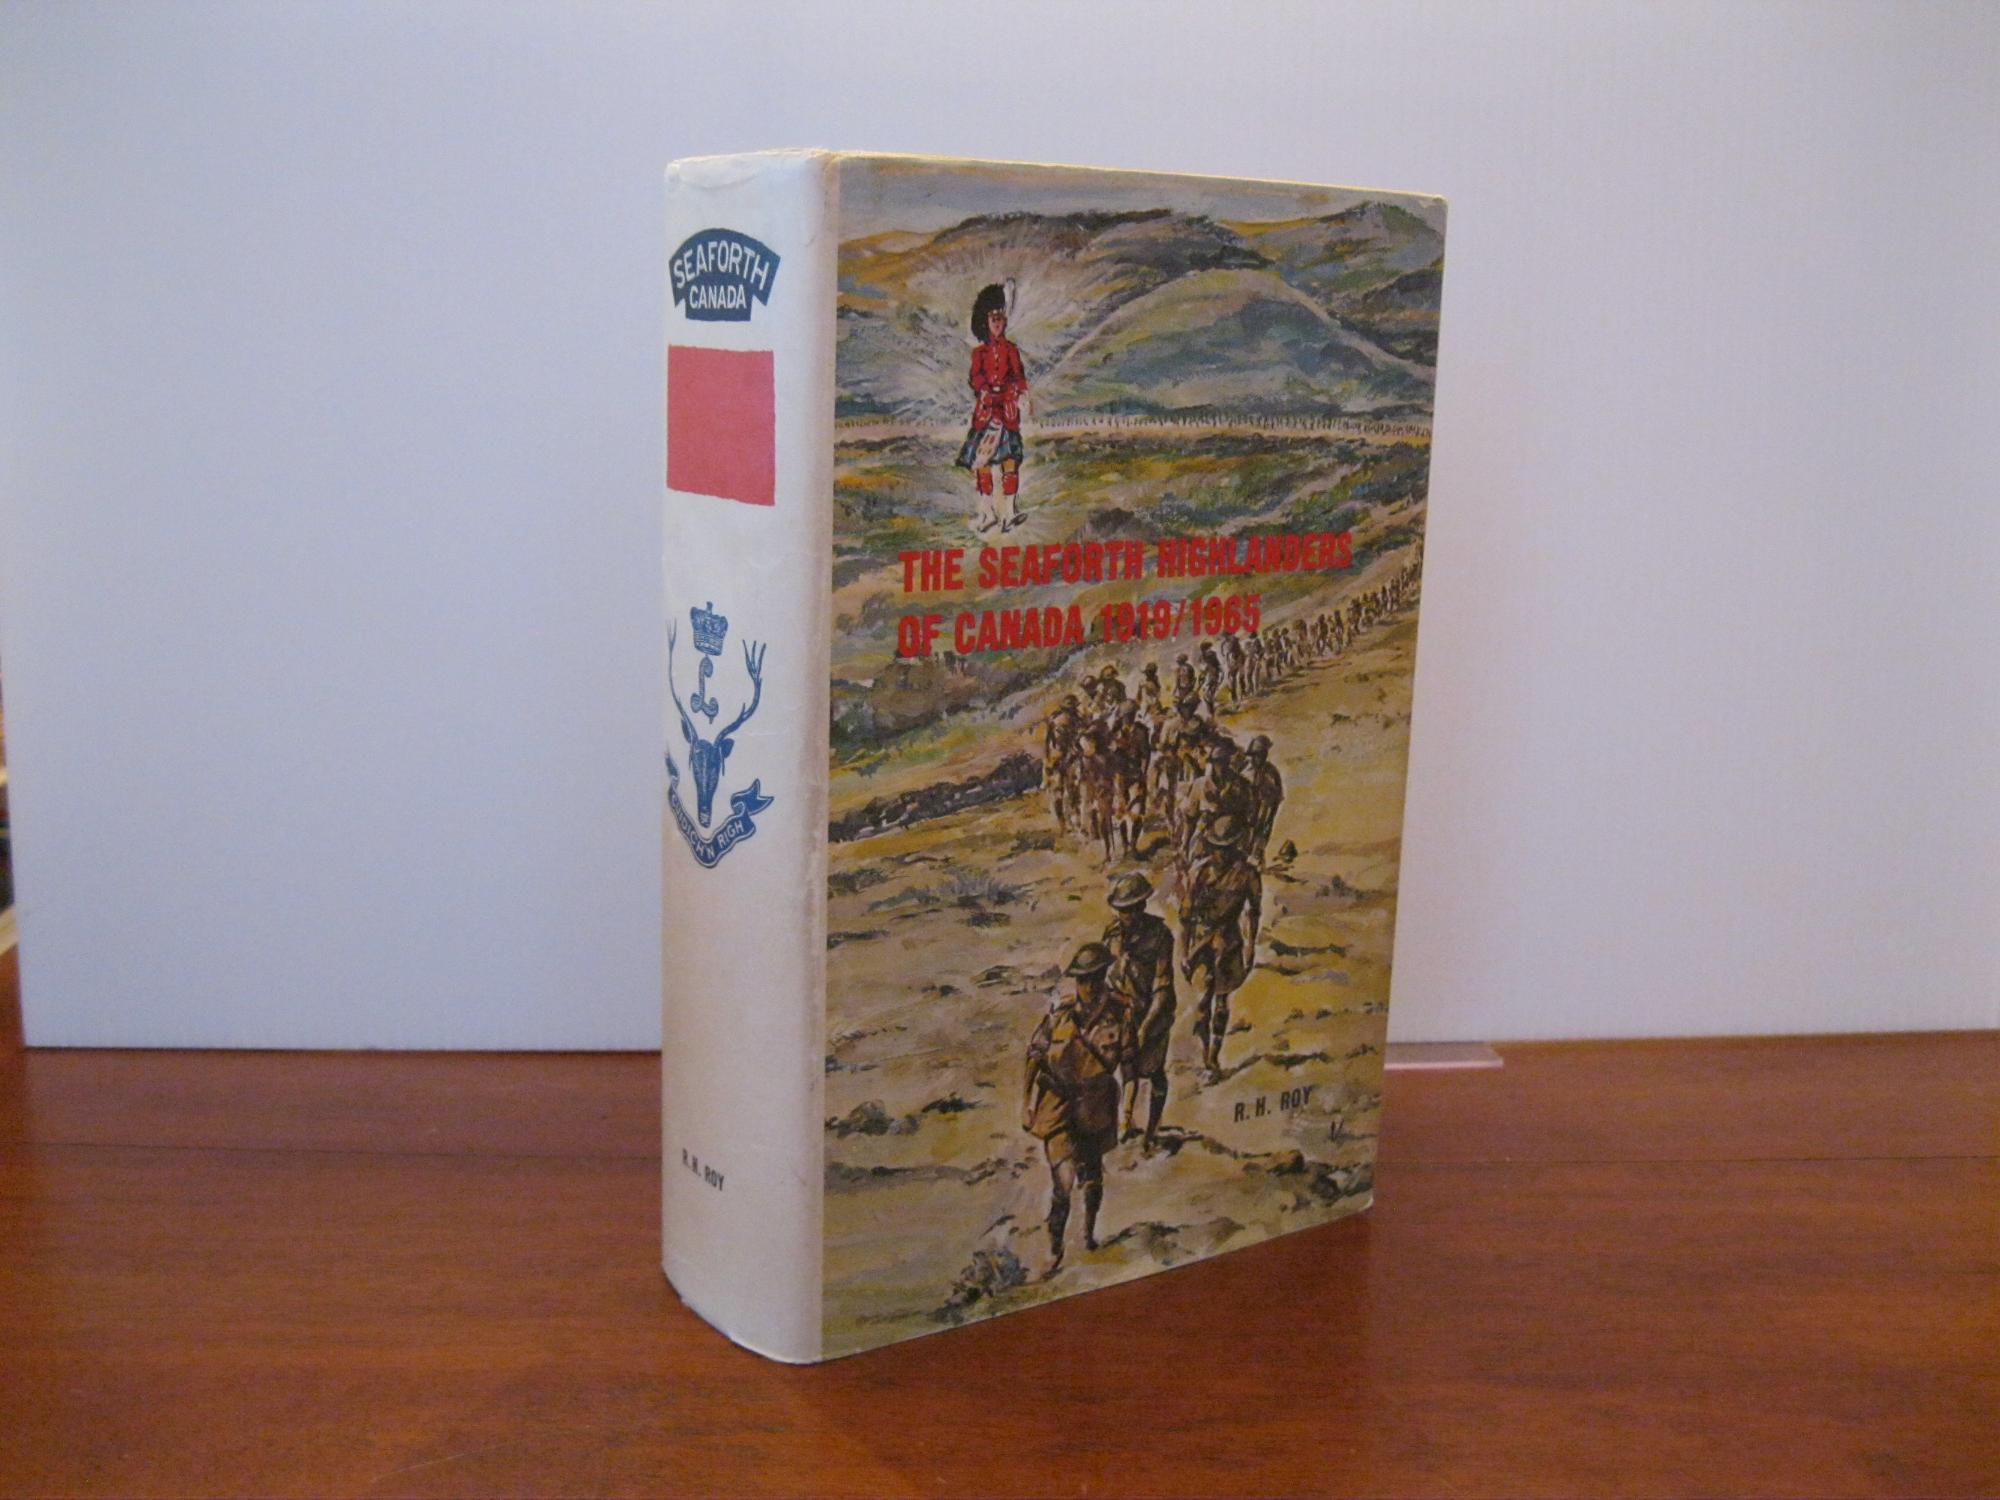 THE_SEAFORTH_HIGHLANDERS_OF_CANADA_1919_1965_ROY,_REGINALD_H._[Very_Good]_[Hardcover]